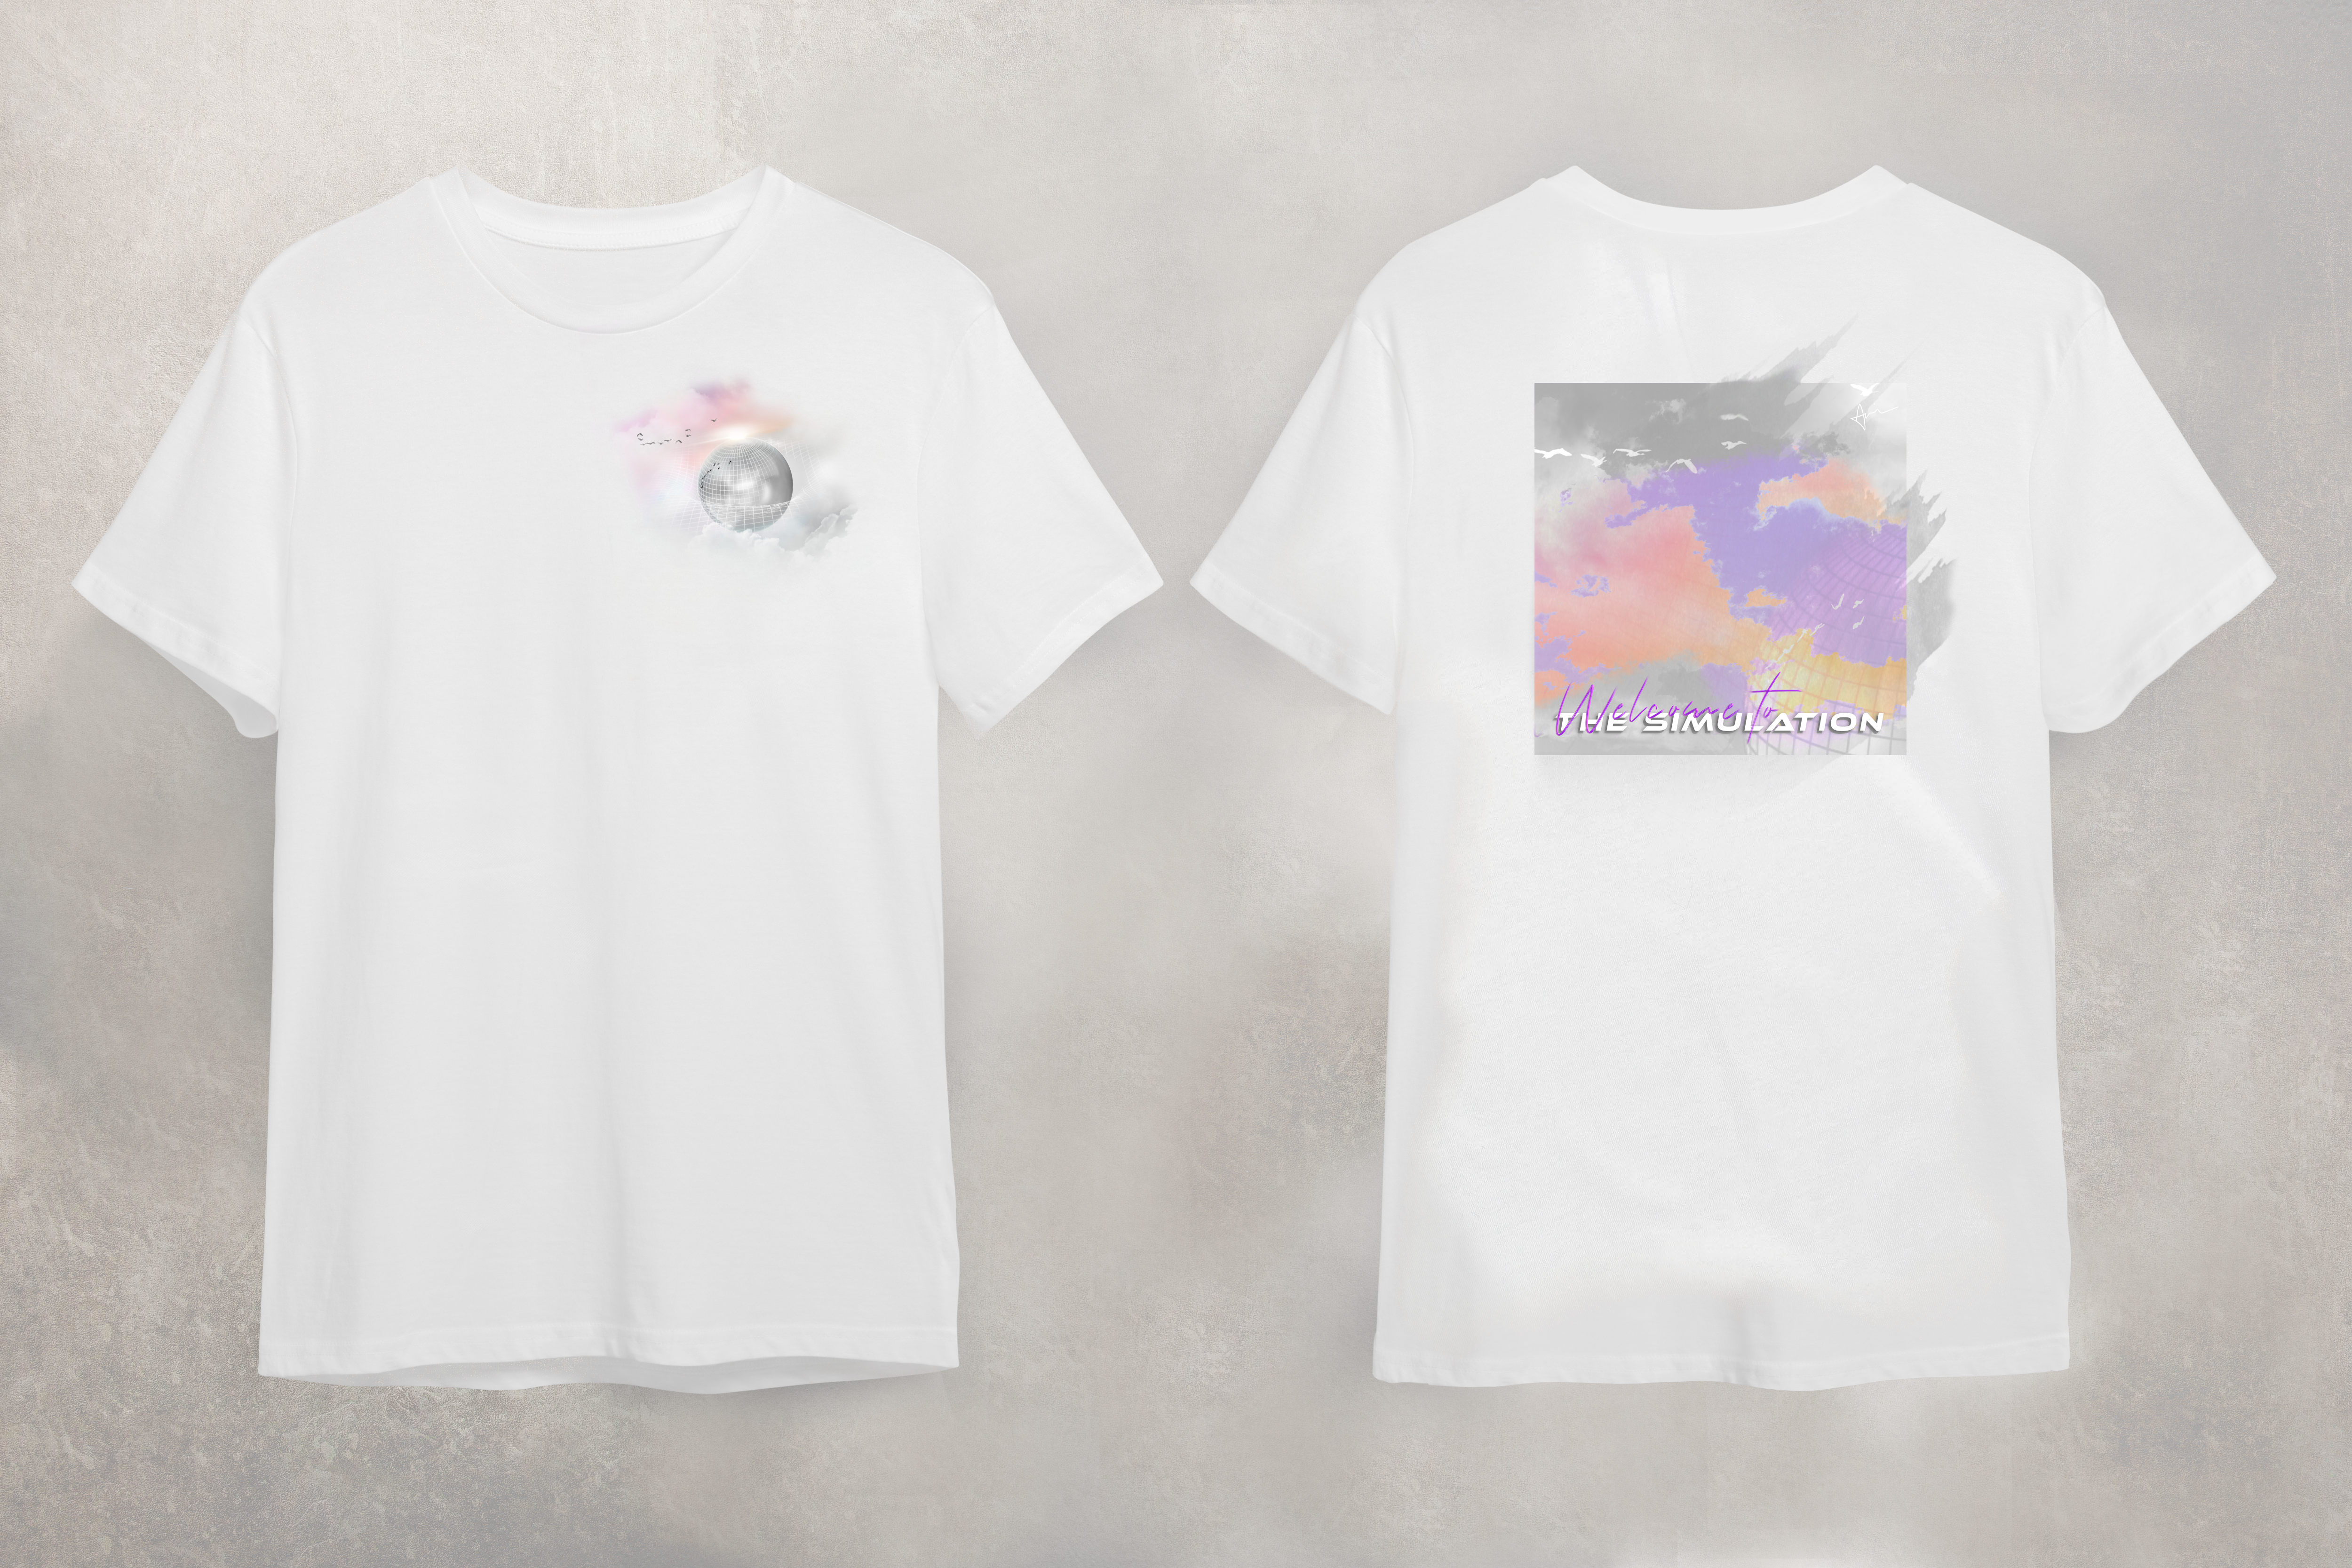 T-Shirt Design for The Simulation - An Electronic Trance and Trip Hop Album by Acacia Carr, 2021